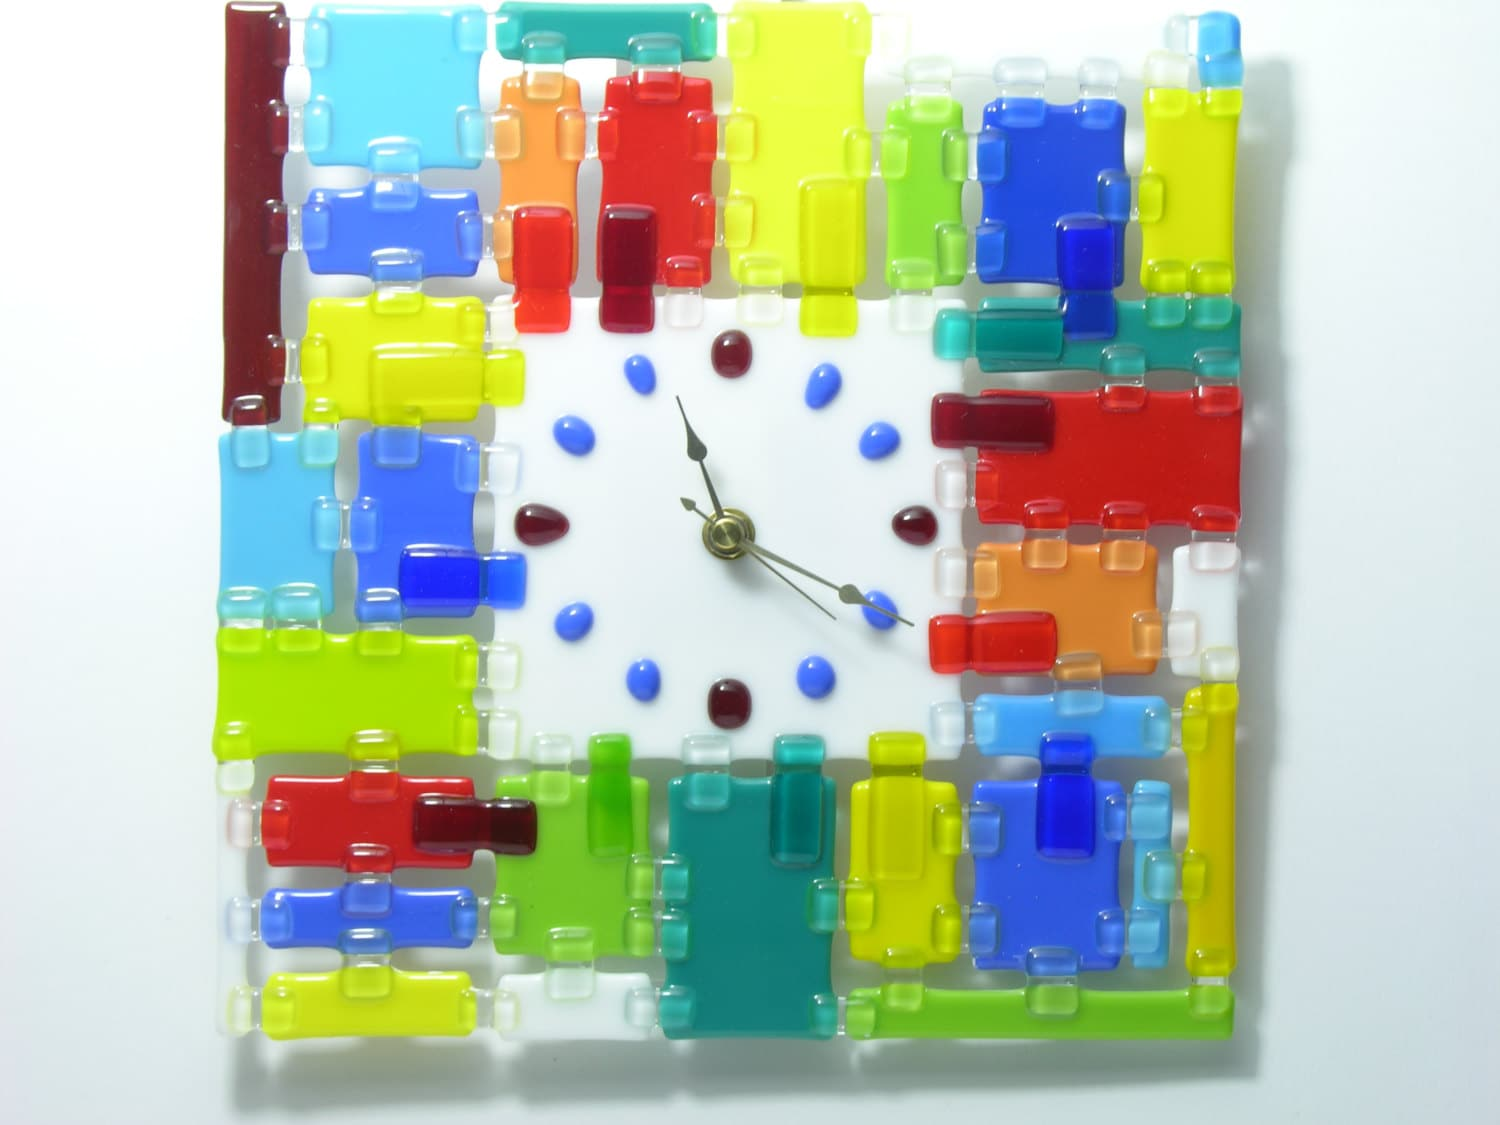 Fused glass wall clock by gamesofcolors on etsy for Fused glass wall clocks